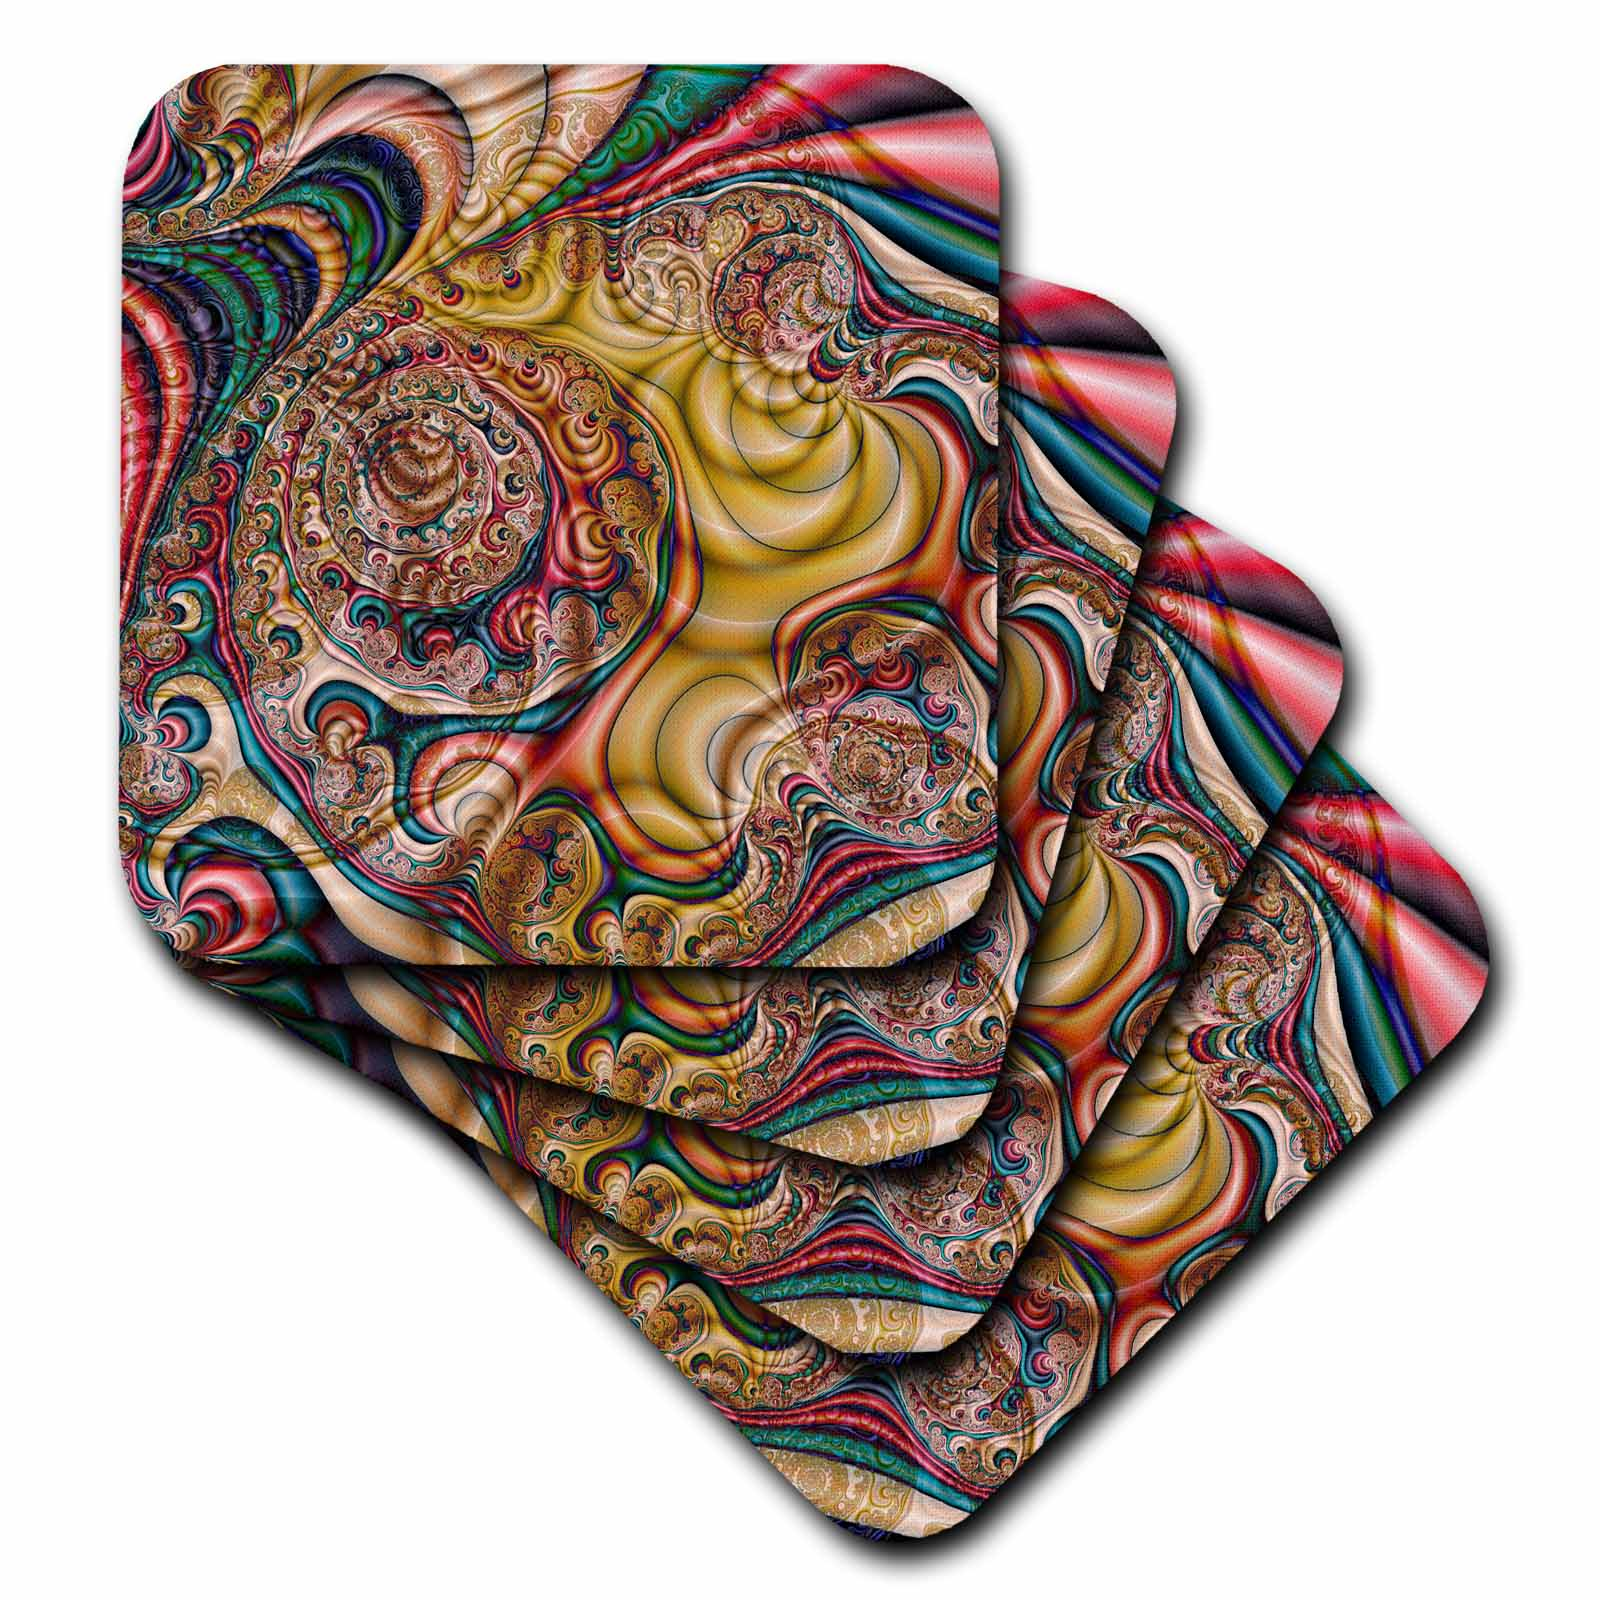 3dRose Crazy Wild Swirly Colors Intricate Fractal Abstract Fractal Art, Soft Coasters, set of 4